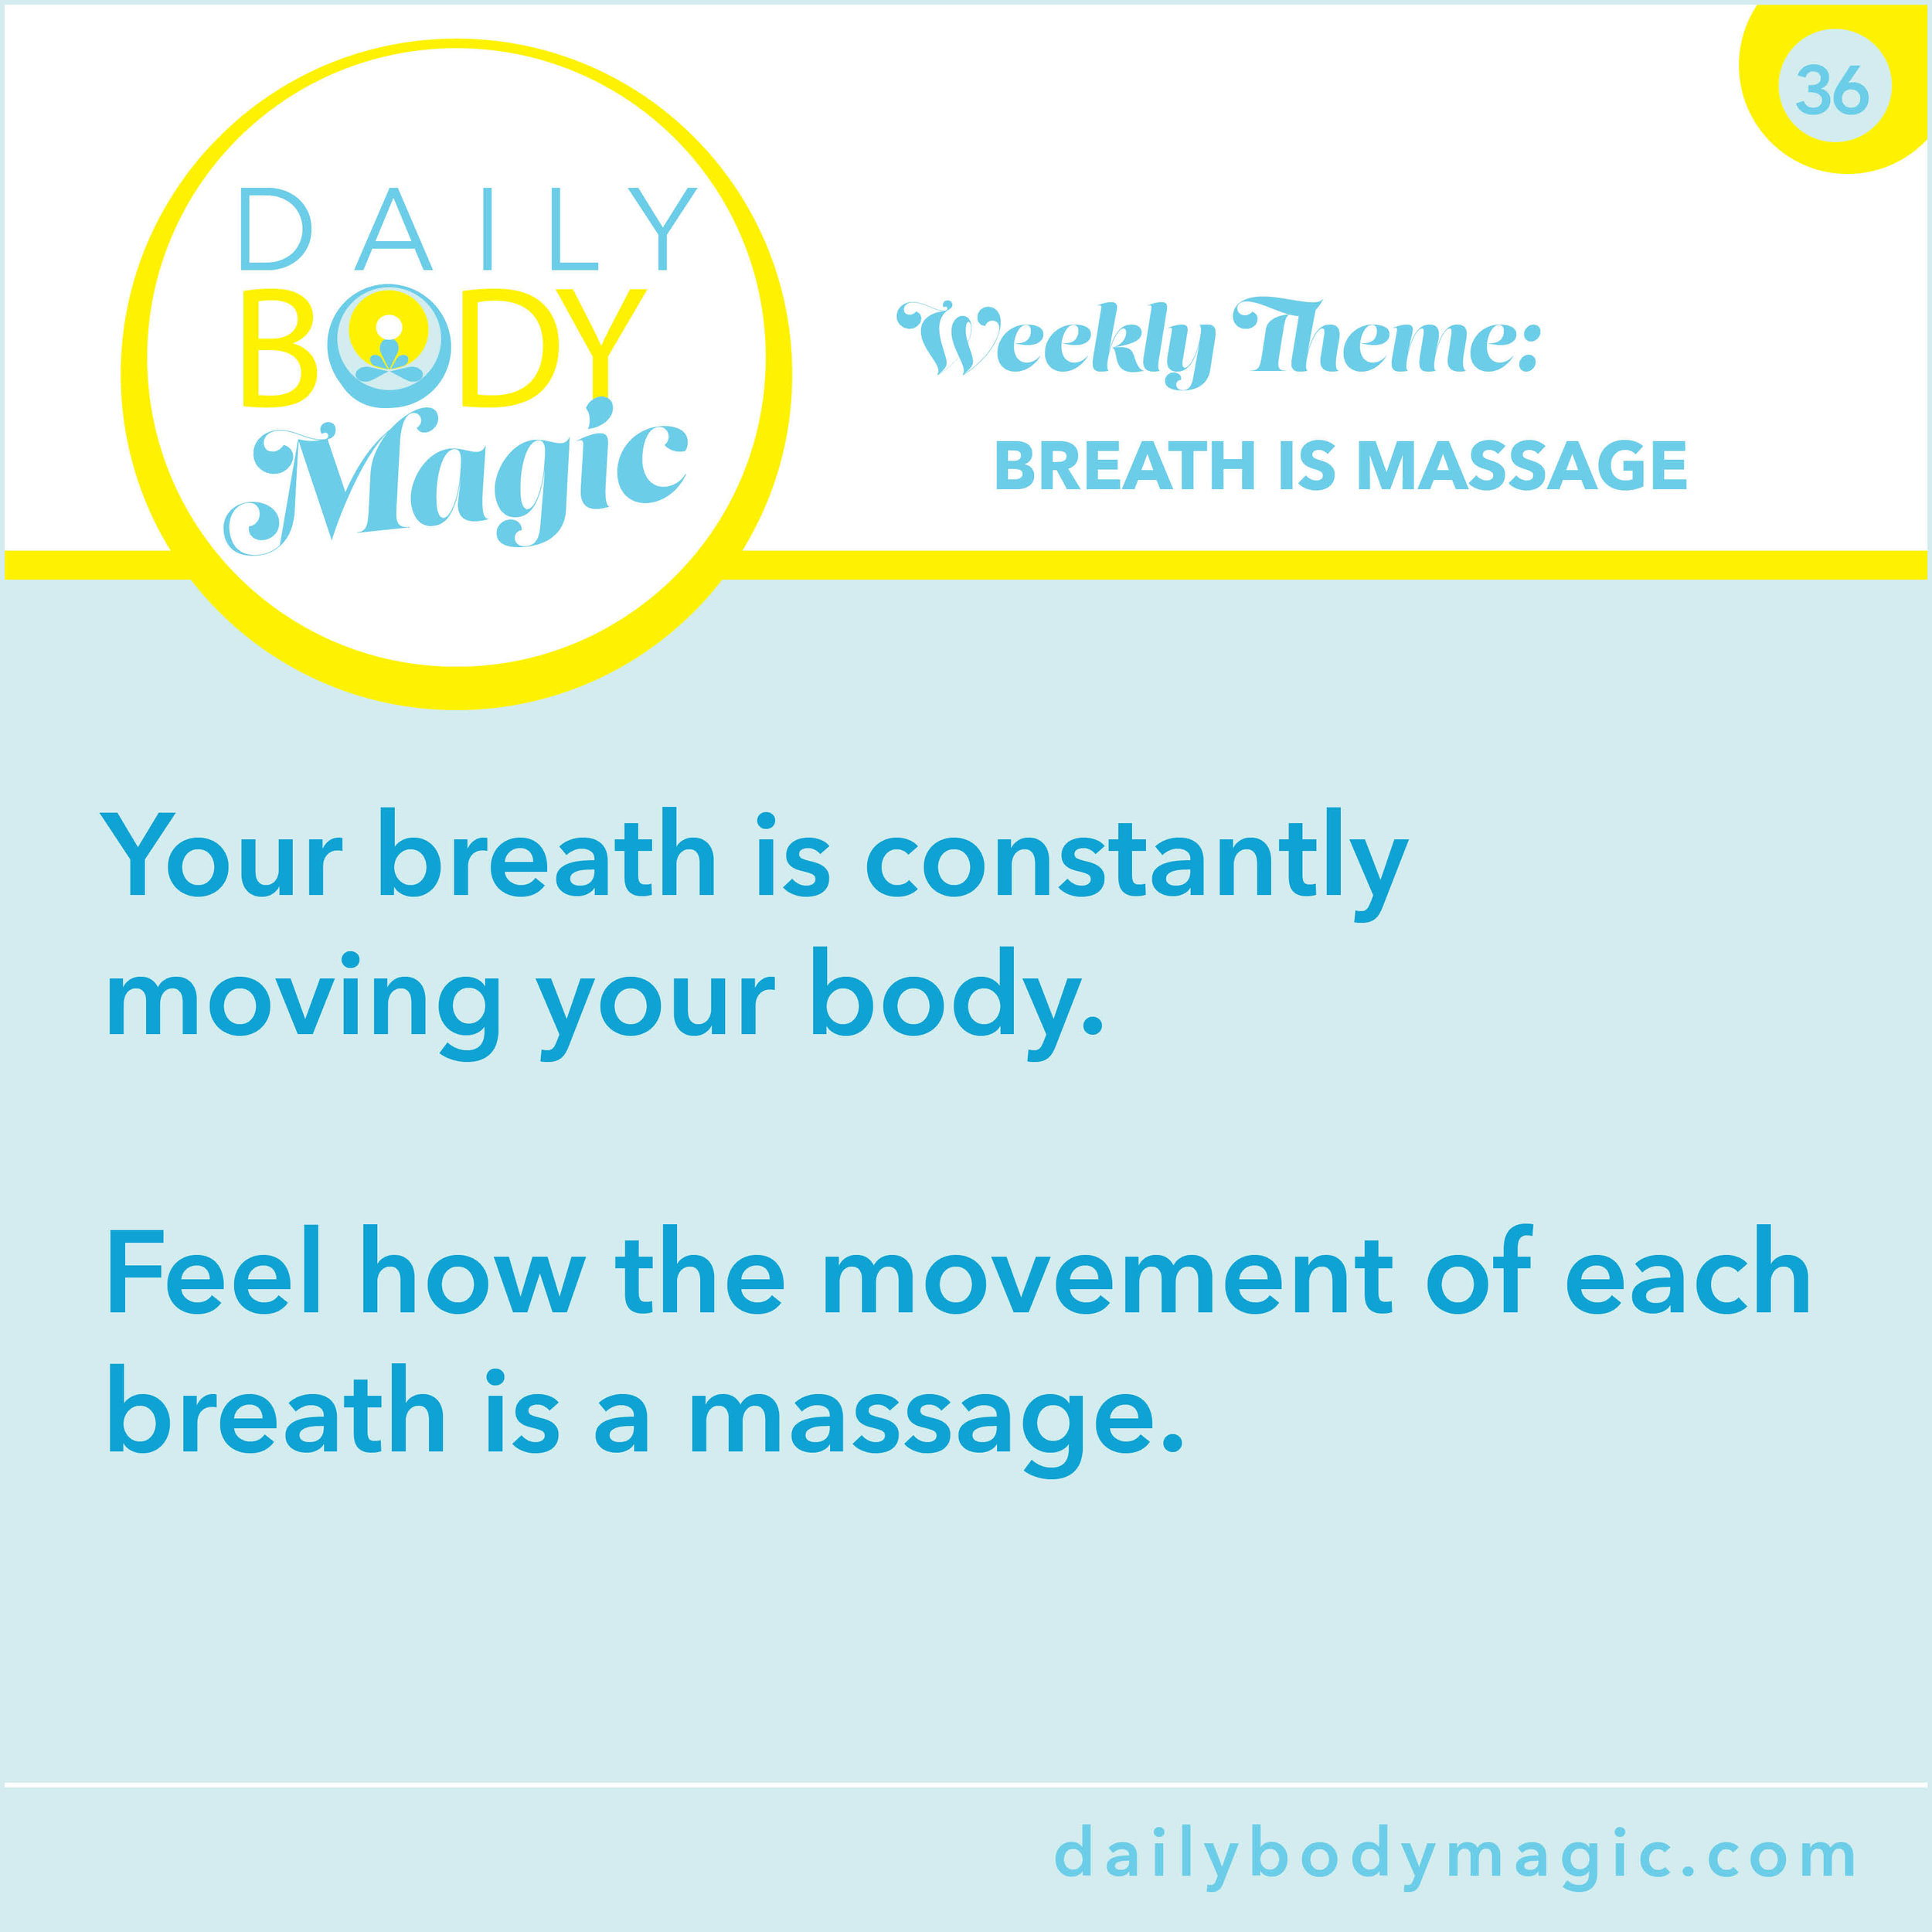 Daily Body Magic -36.jpg